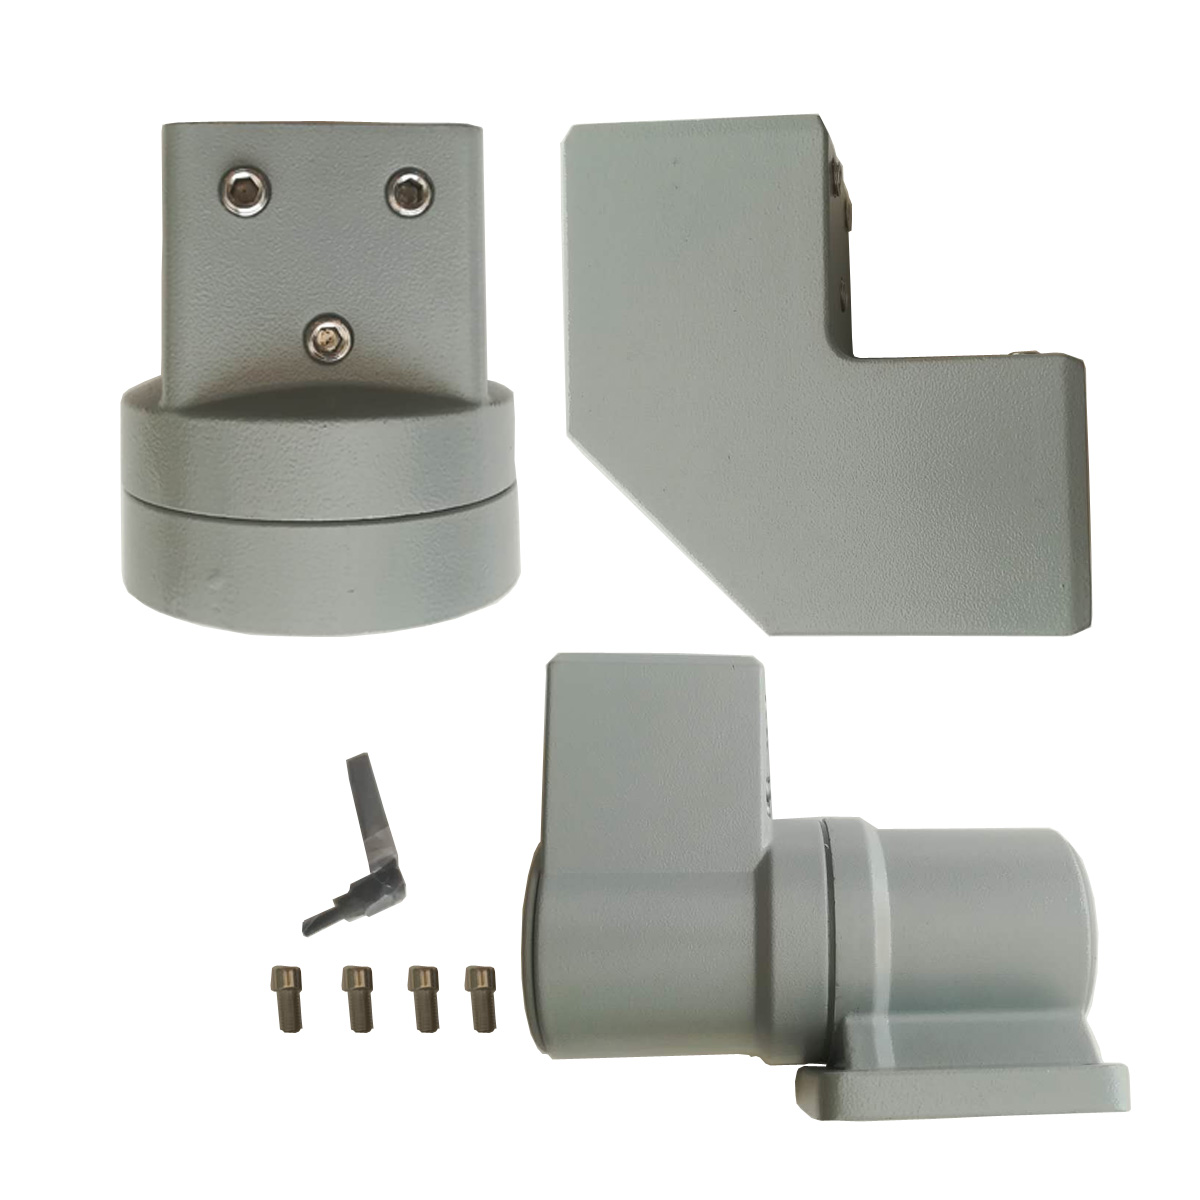 Dispaly support right angle corner fitting plus wall base plus display fixture full kit for fiber